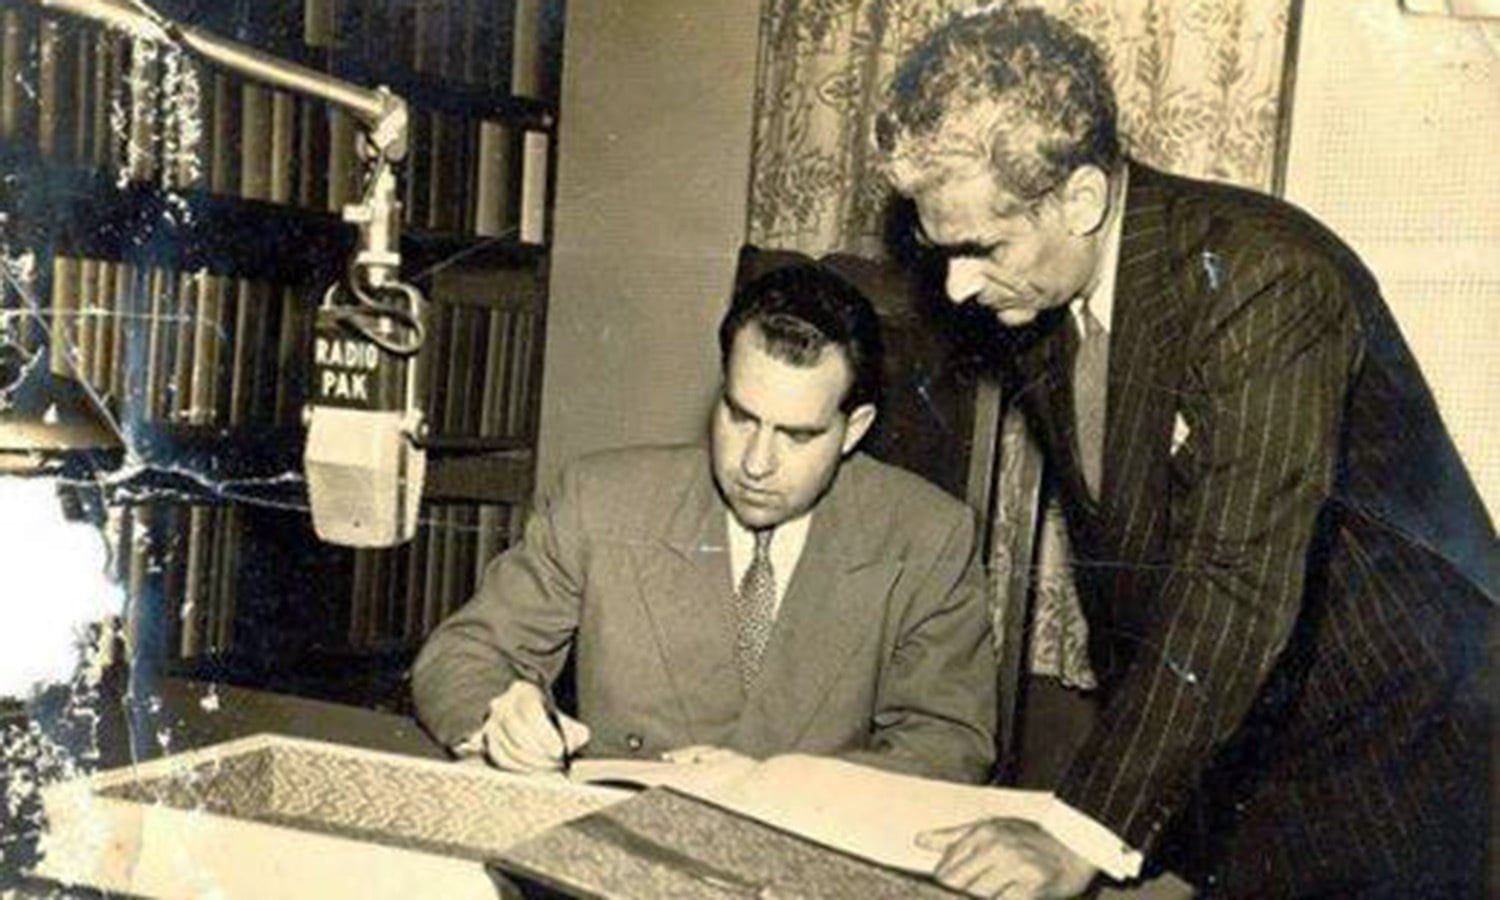 US Vice President John Wayne and a curly-haired Pakistani reviewing an agreement in Karachi in 1958. The US agreed to provide Pakistan economic and military aid but was non-committal about sharing Coca Cola's secret formula. The curly haired Pakistani was very disappointed.